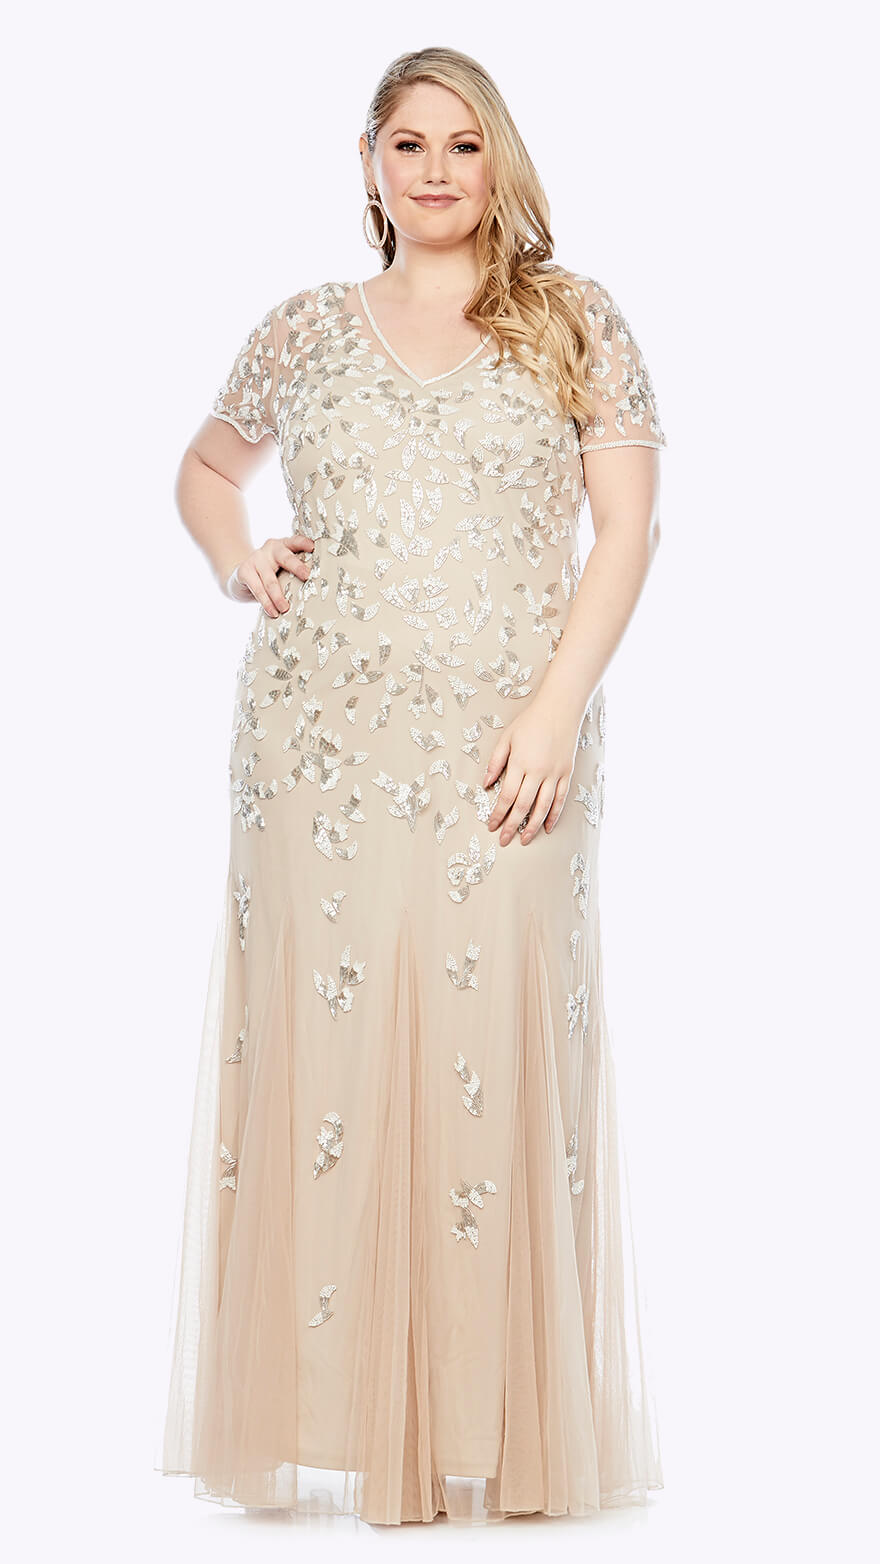 LJ0372 Full-length gown in embroidered chiffon with sweetheart style bodice